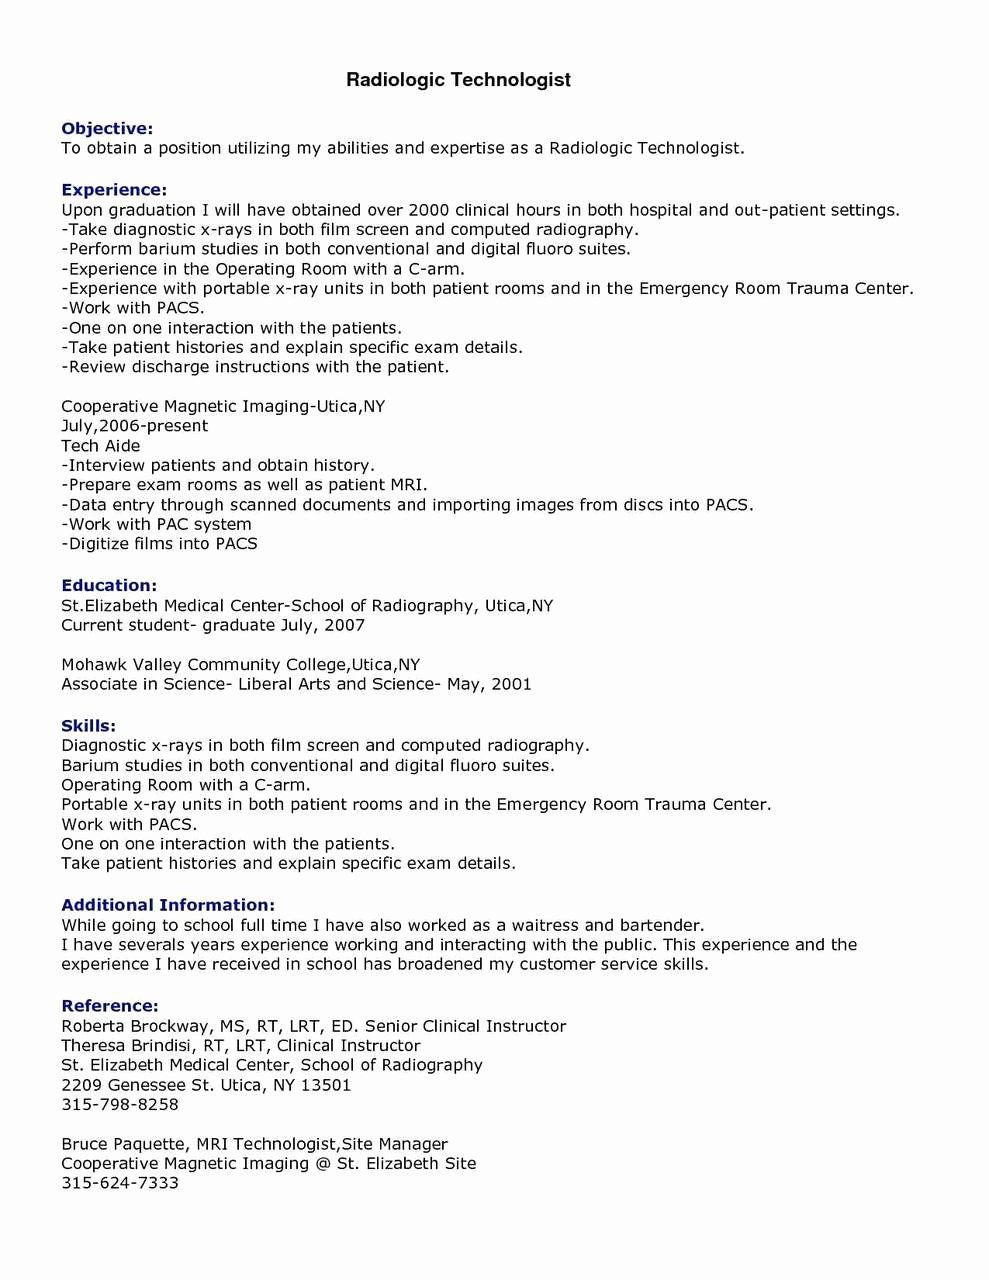 Surgical Tech Resume Example Elegant 12 13 Surgical